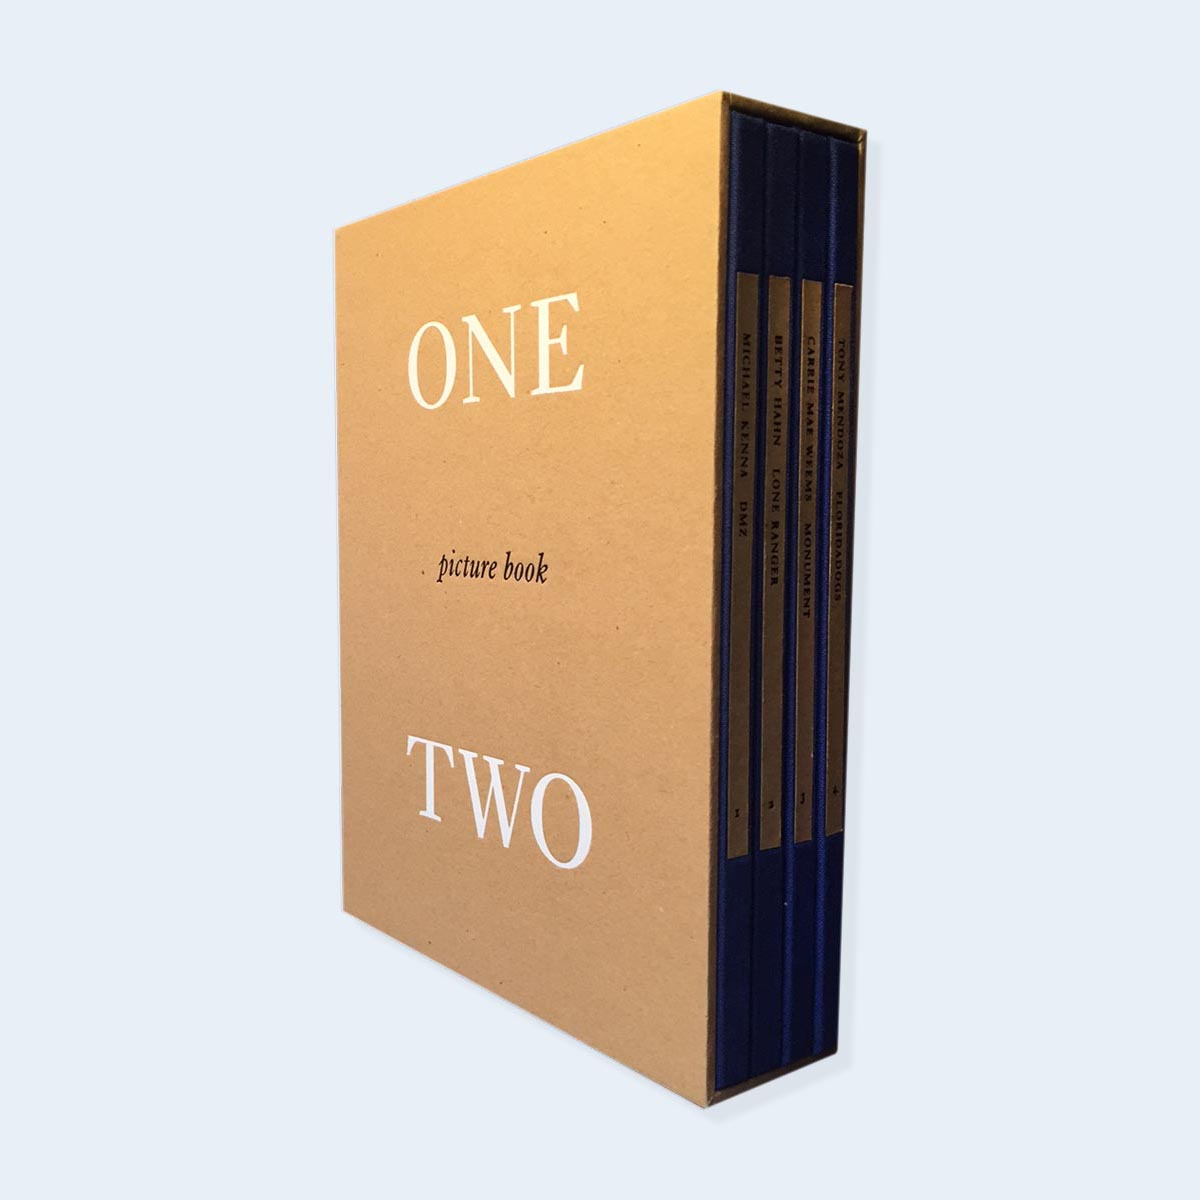 NAZRAELI PRESS | One Picture Book Two | More Info >